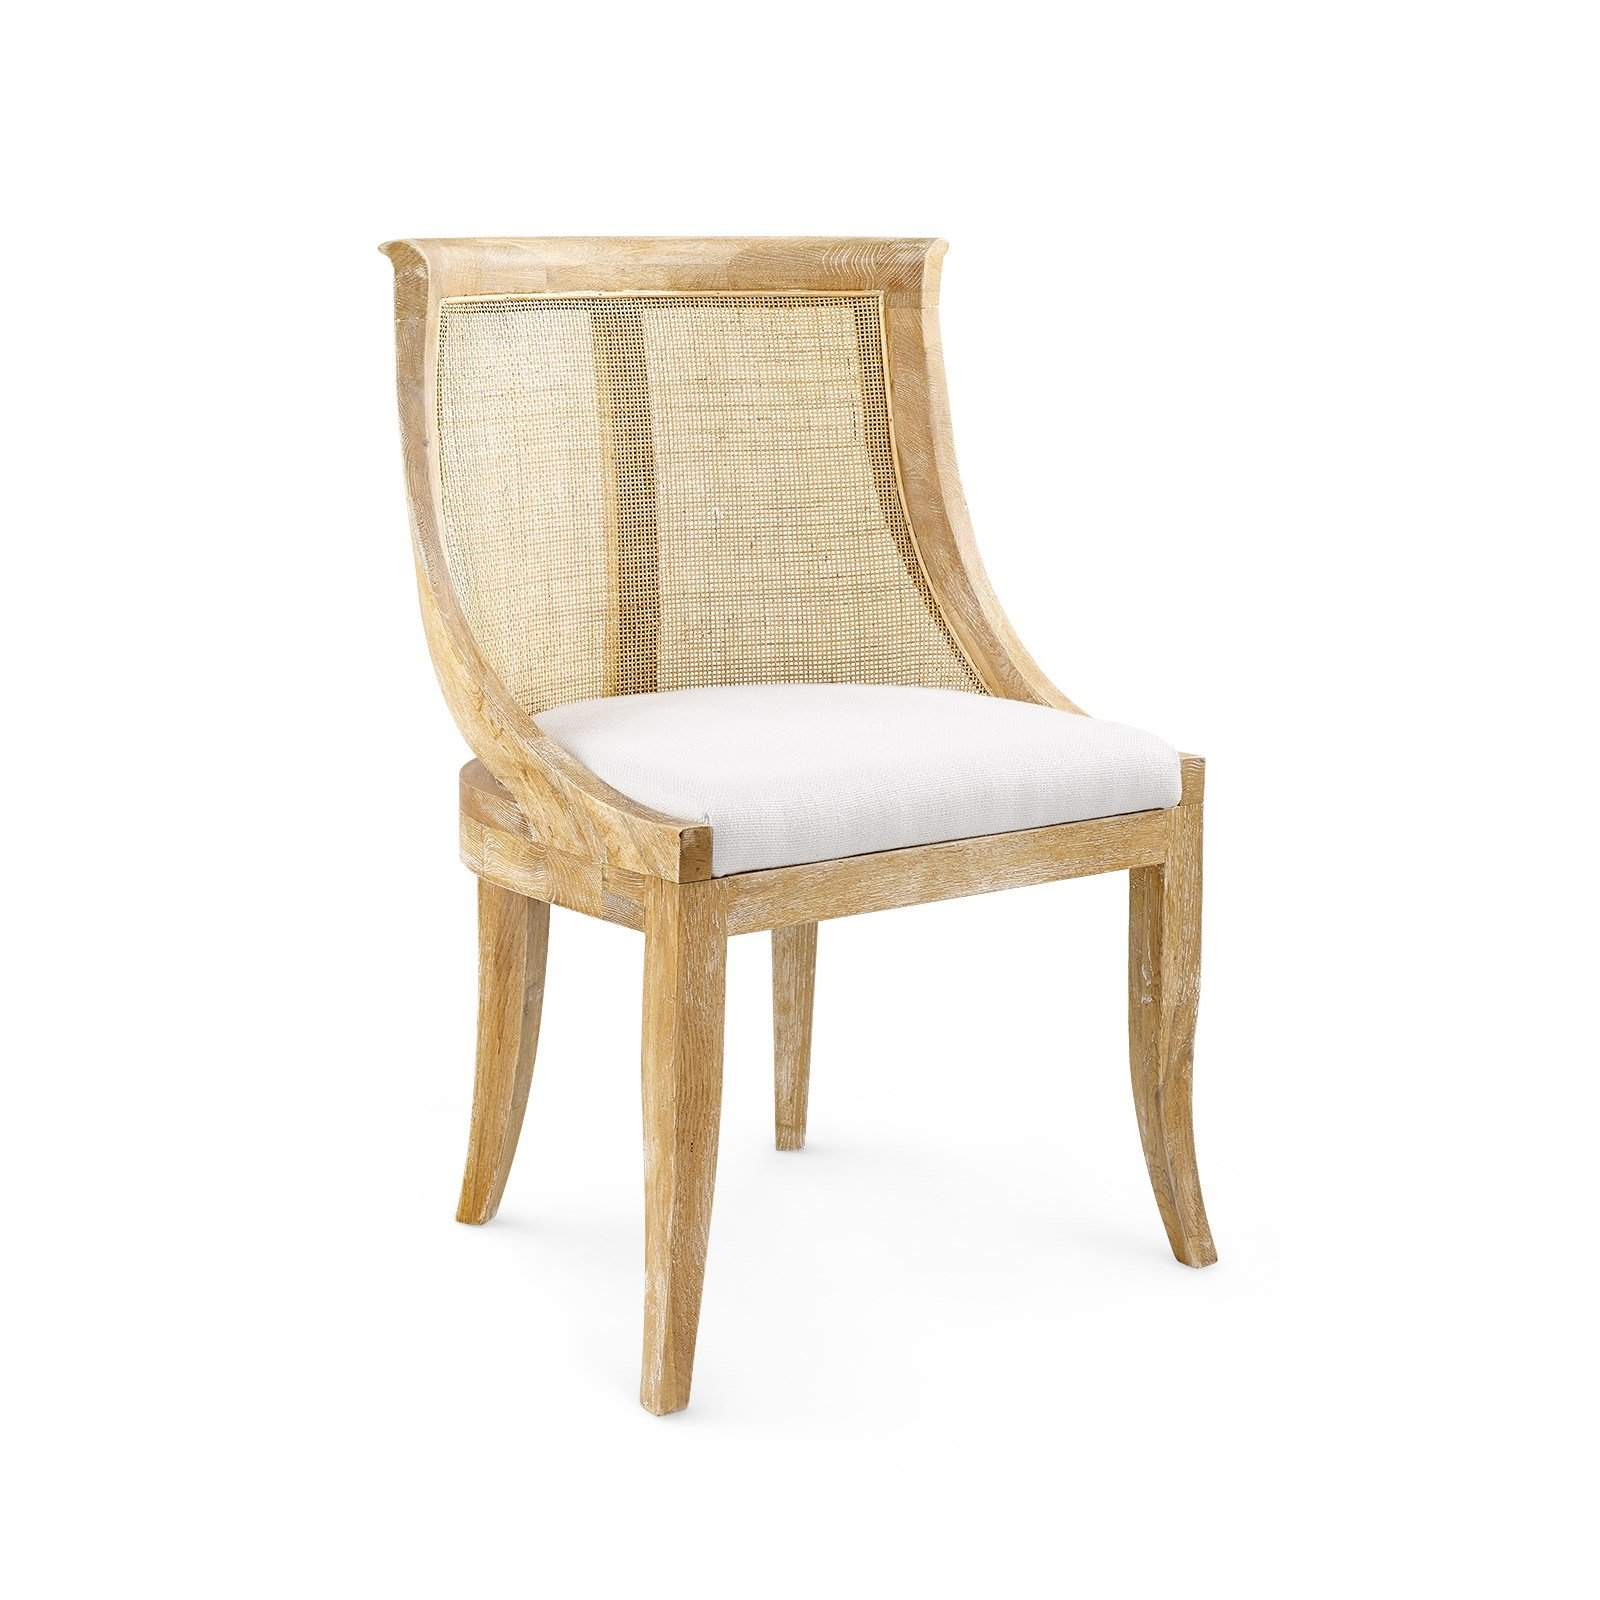 Bungalow 5 - MONACO ARMCHAIR in NATURAL